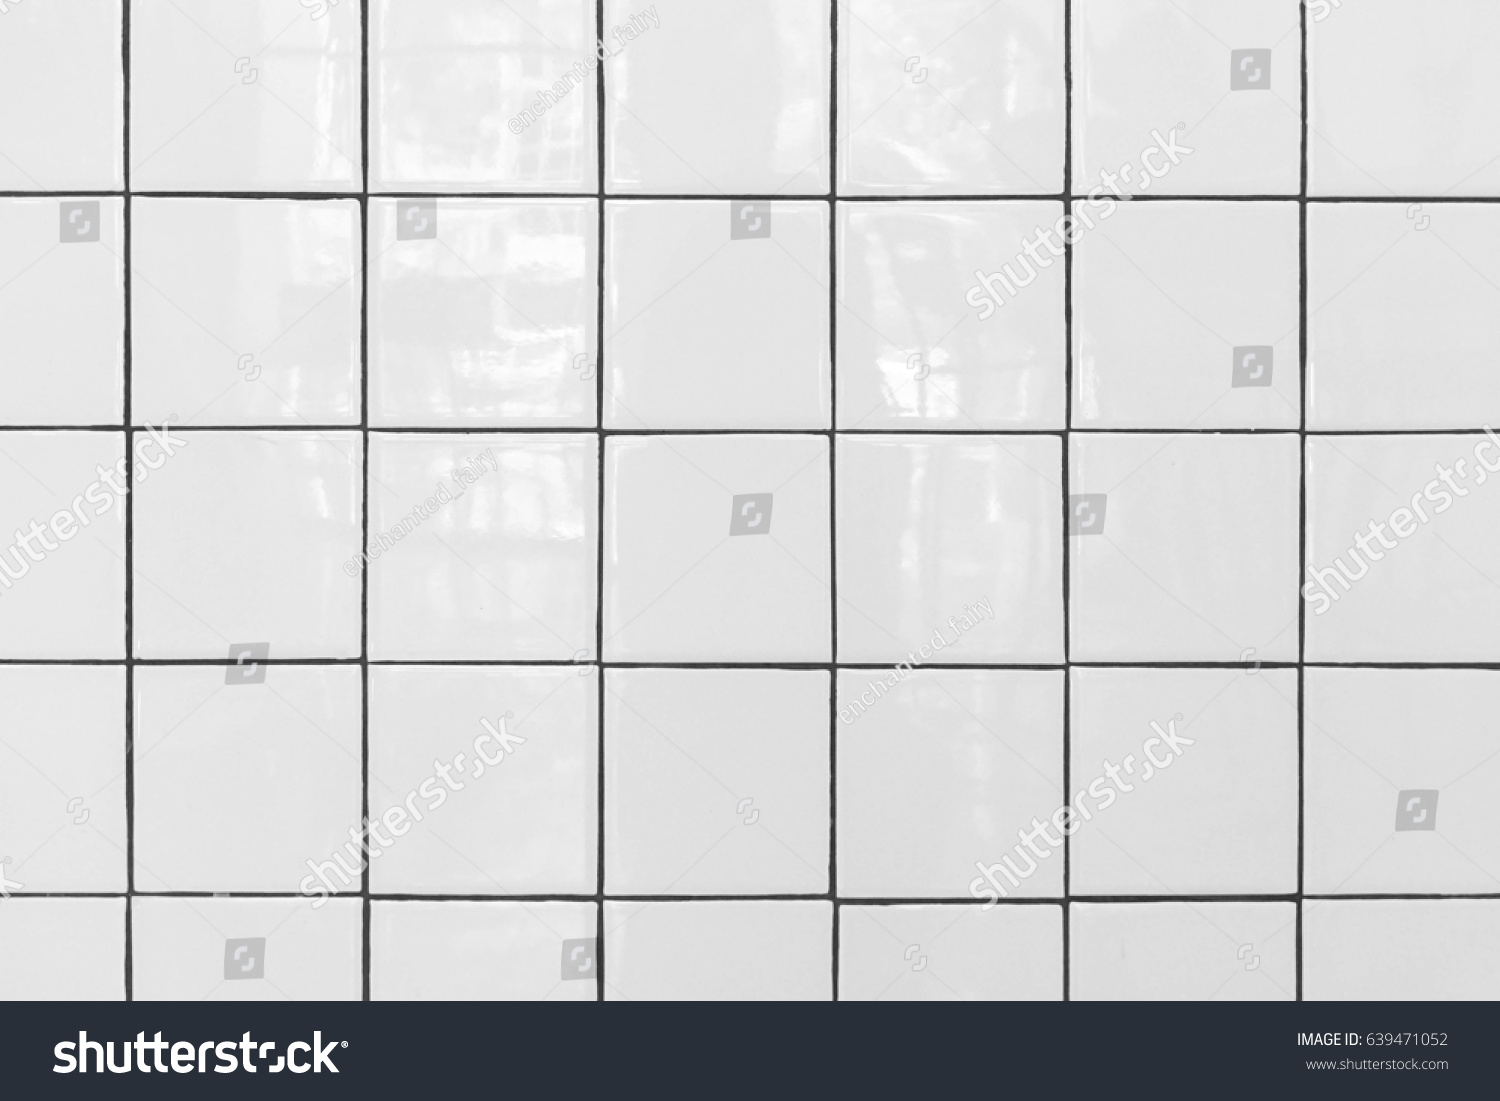 White tiles floor closed white glossy stock photo royalty free white tiles floor closed up of white glossy ceramic brick tiles floor texture tile dailygadgetfo Image collections